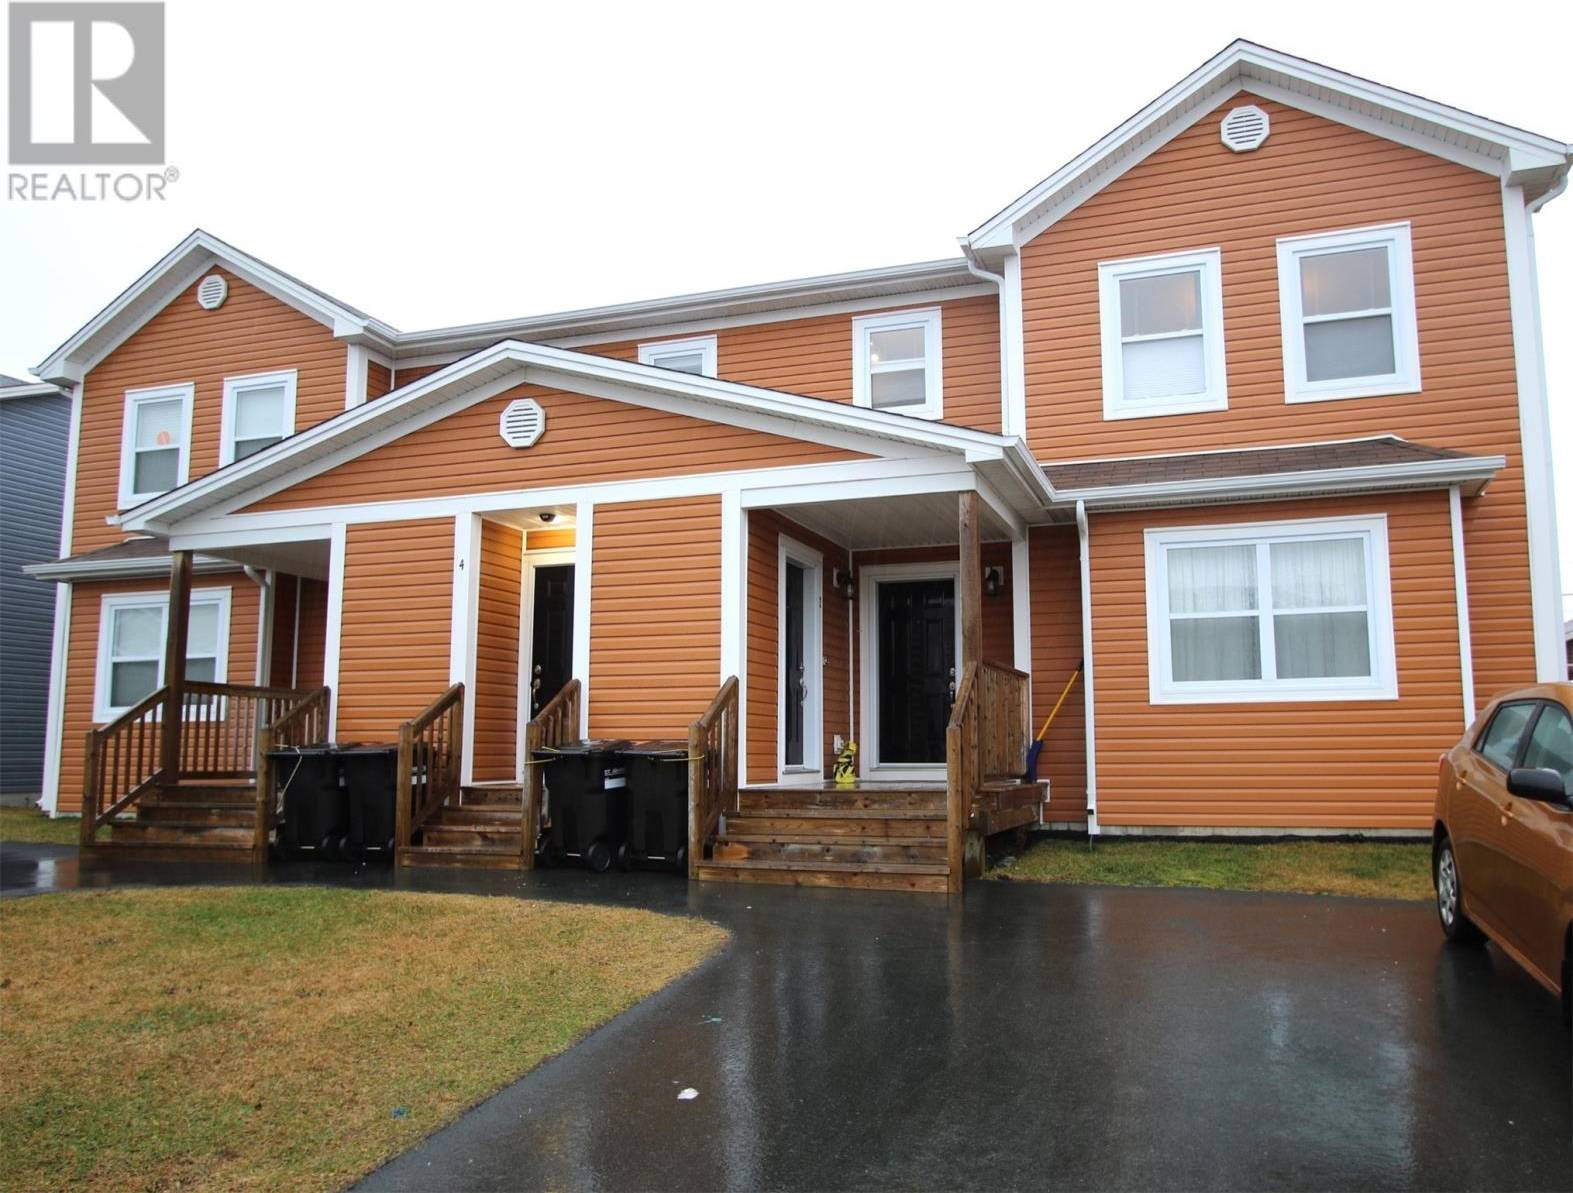 House for sale at 4 Guernsey Pl Unit 4 St. John's Newfoundland - MLS: 1208942